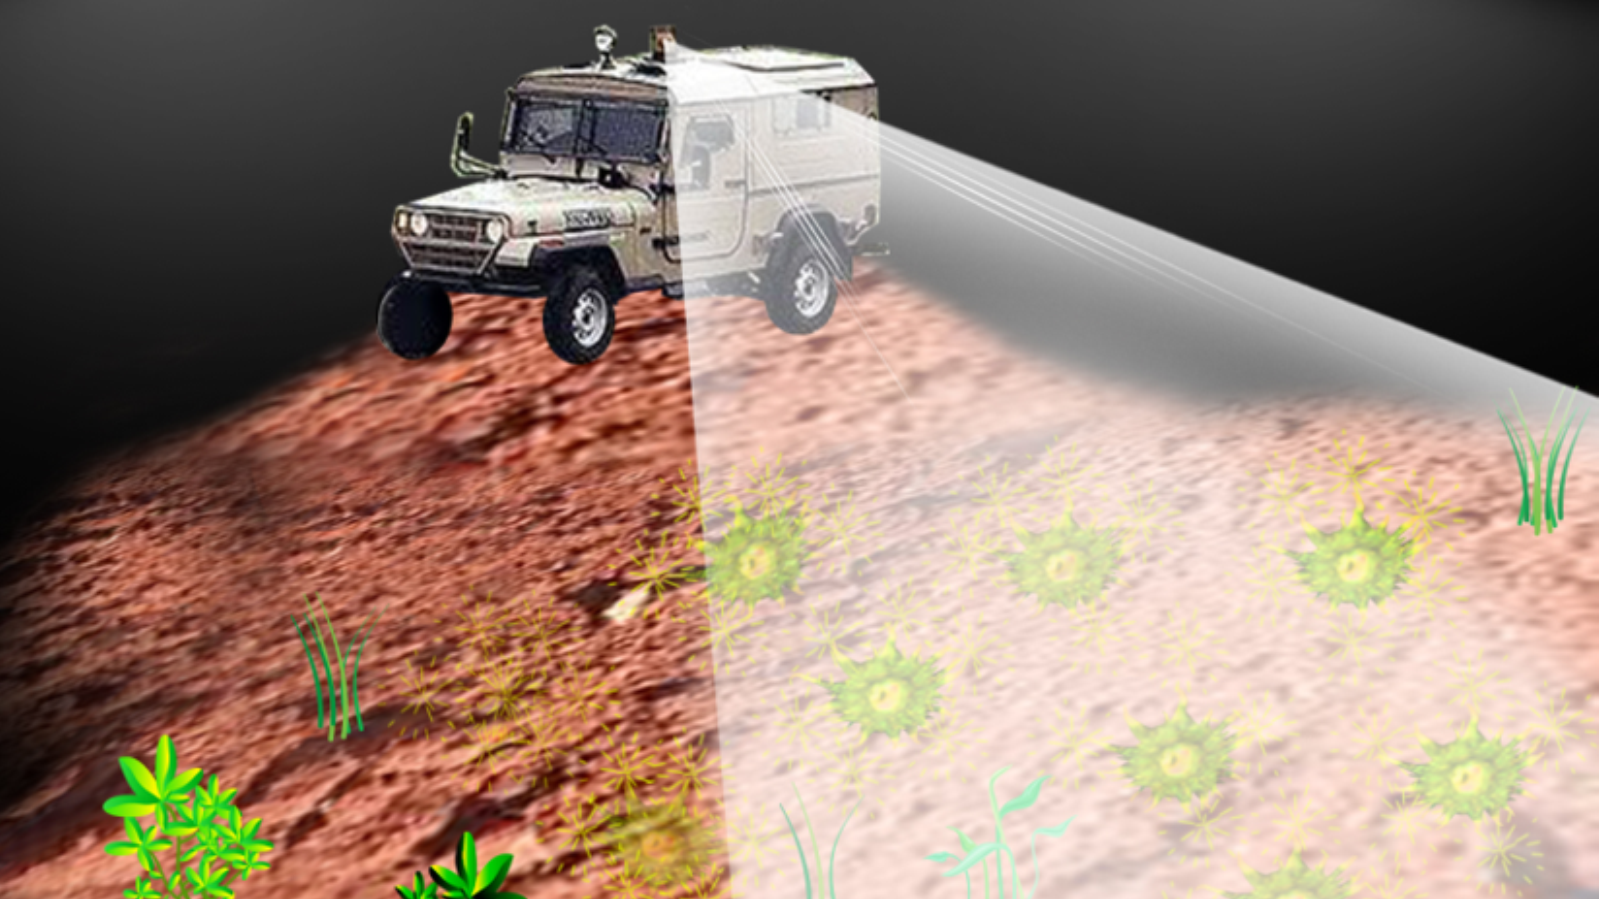 Possible application of a system to detect buried landmines using a bacterial sensor. Image courtesy of Hebrew University